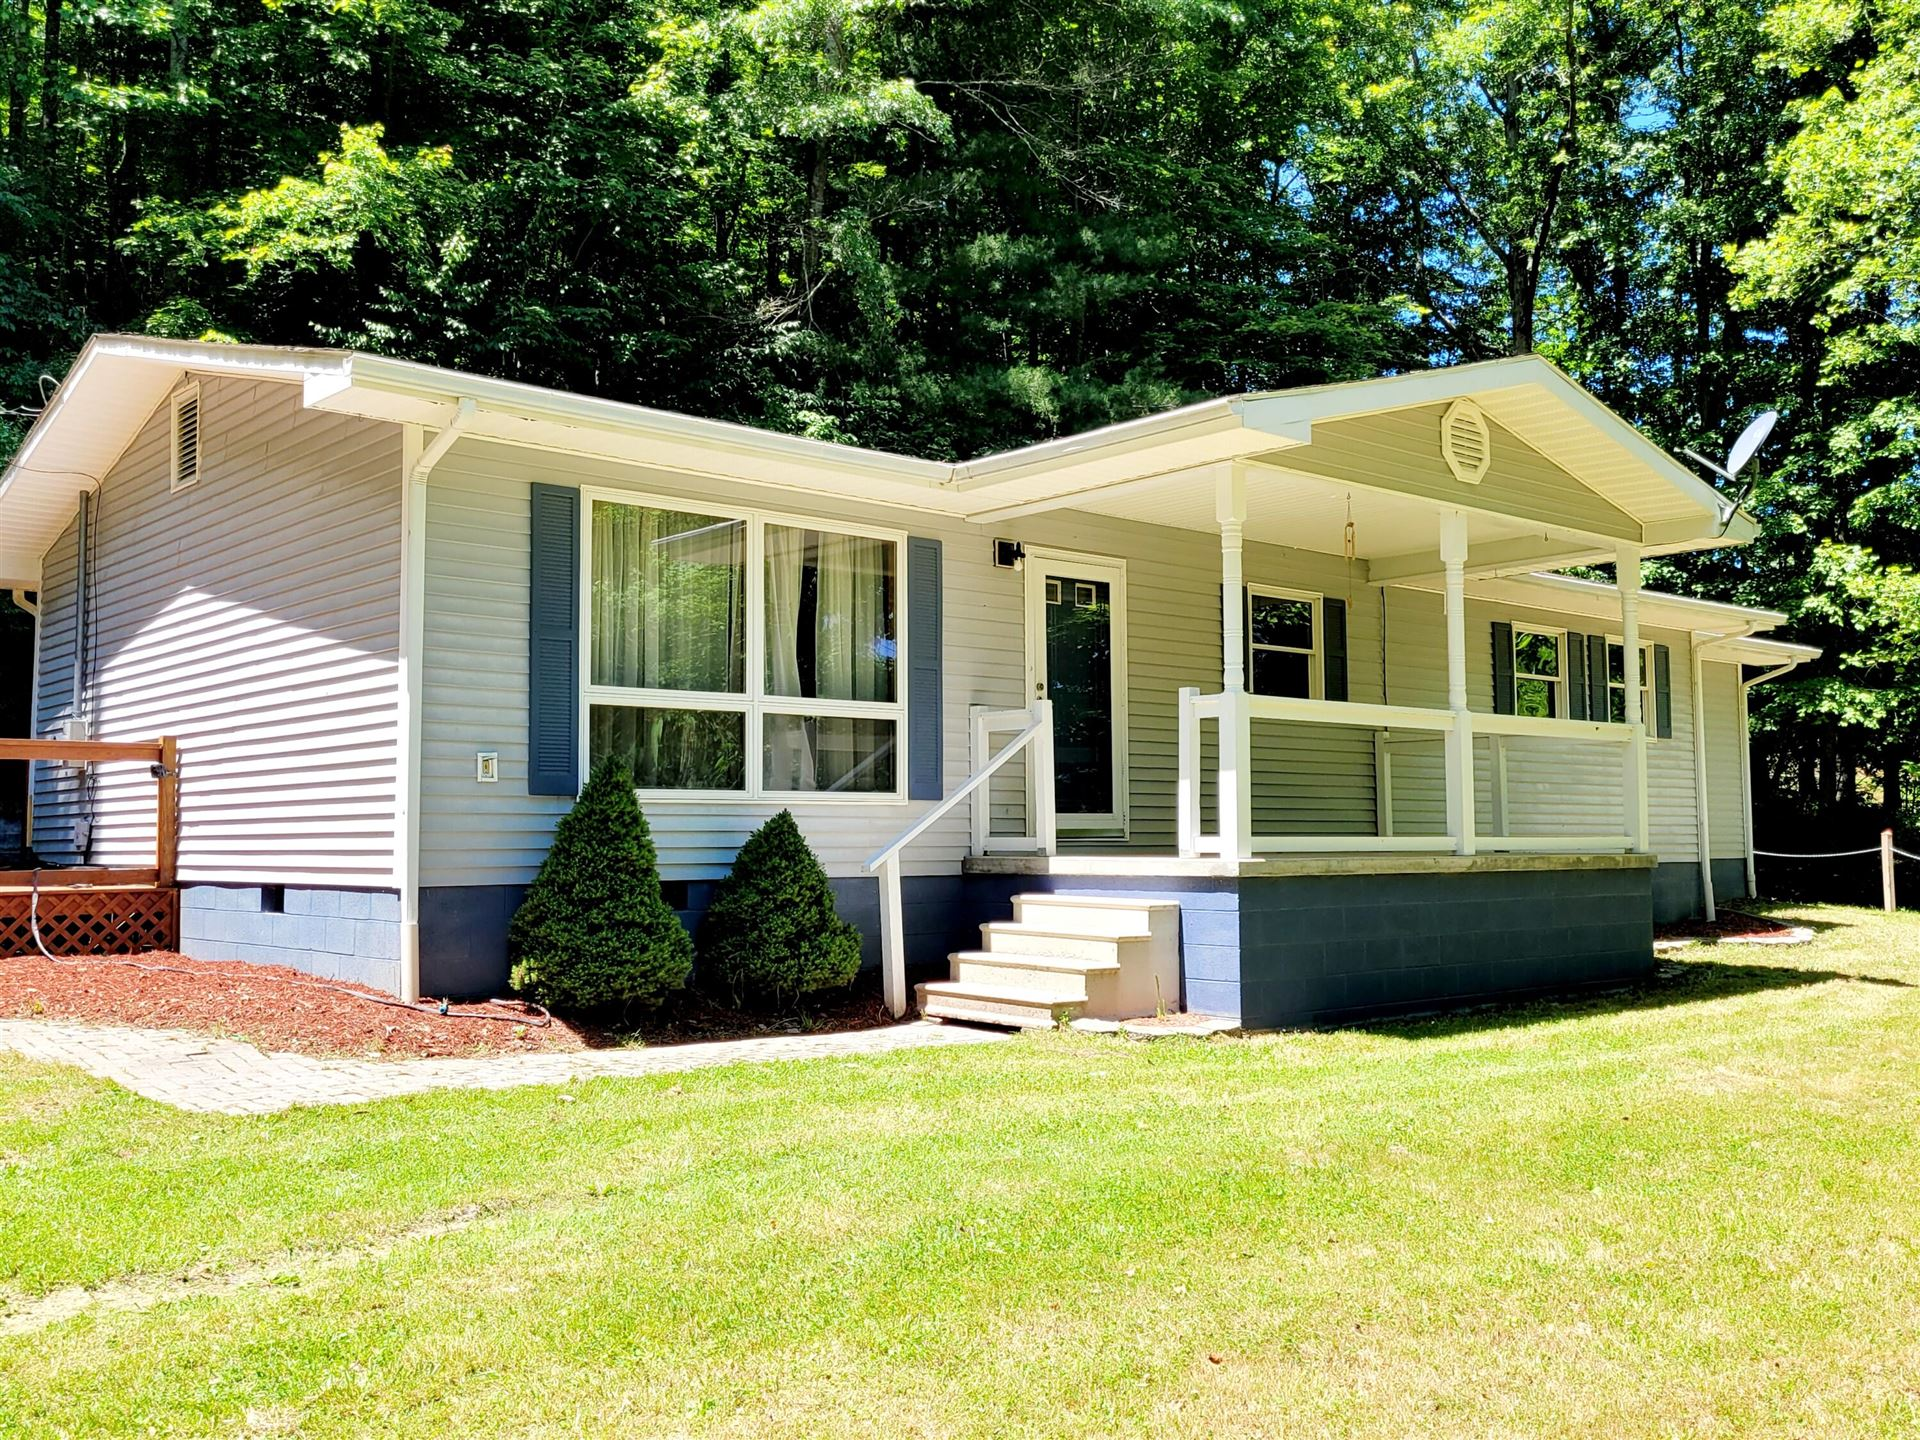 Photo of 130 Dennis Lilly Drive, Clintwood, VA 24228 (MLS # 9924077)